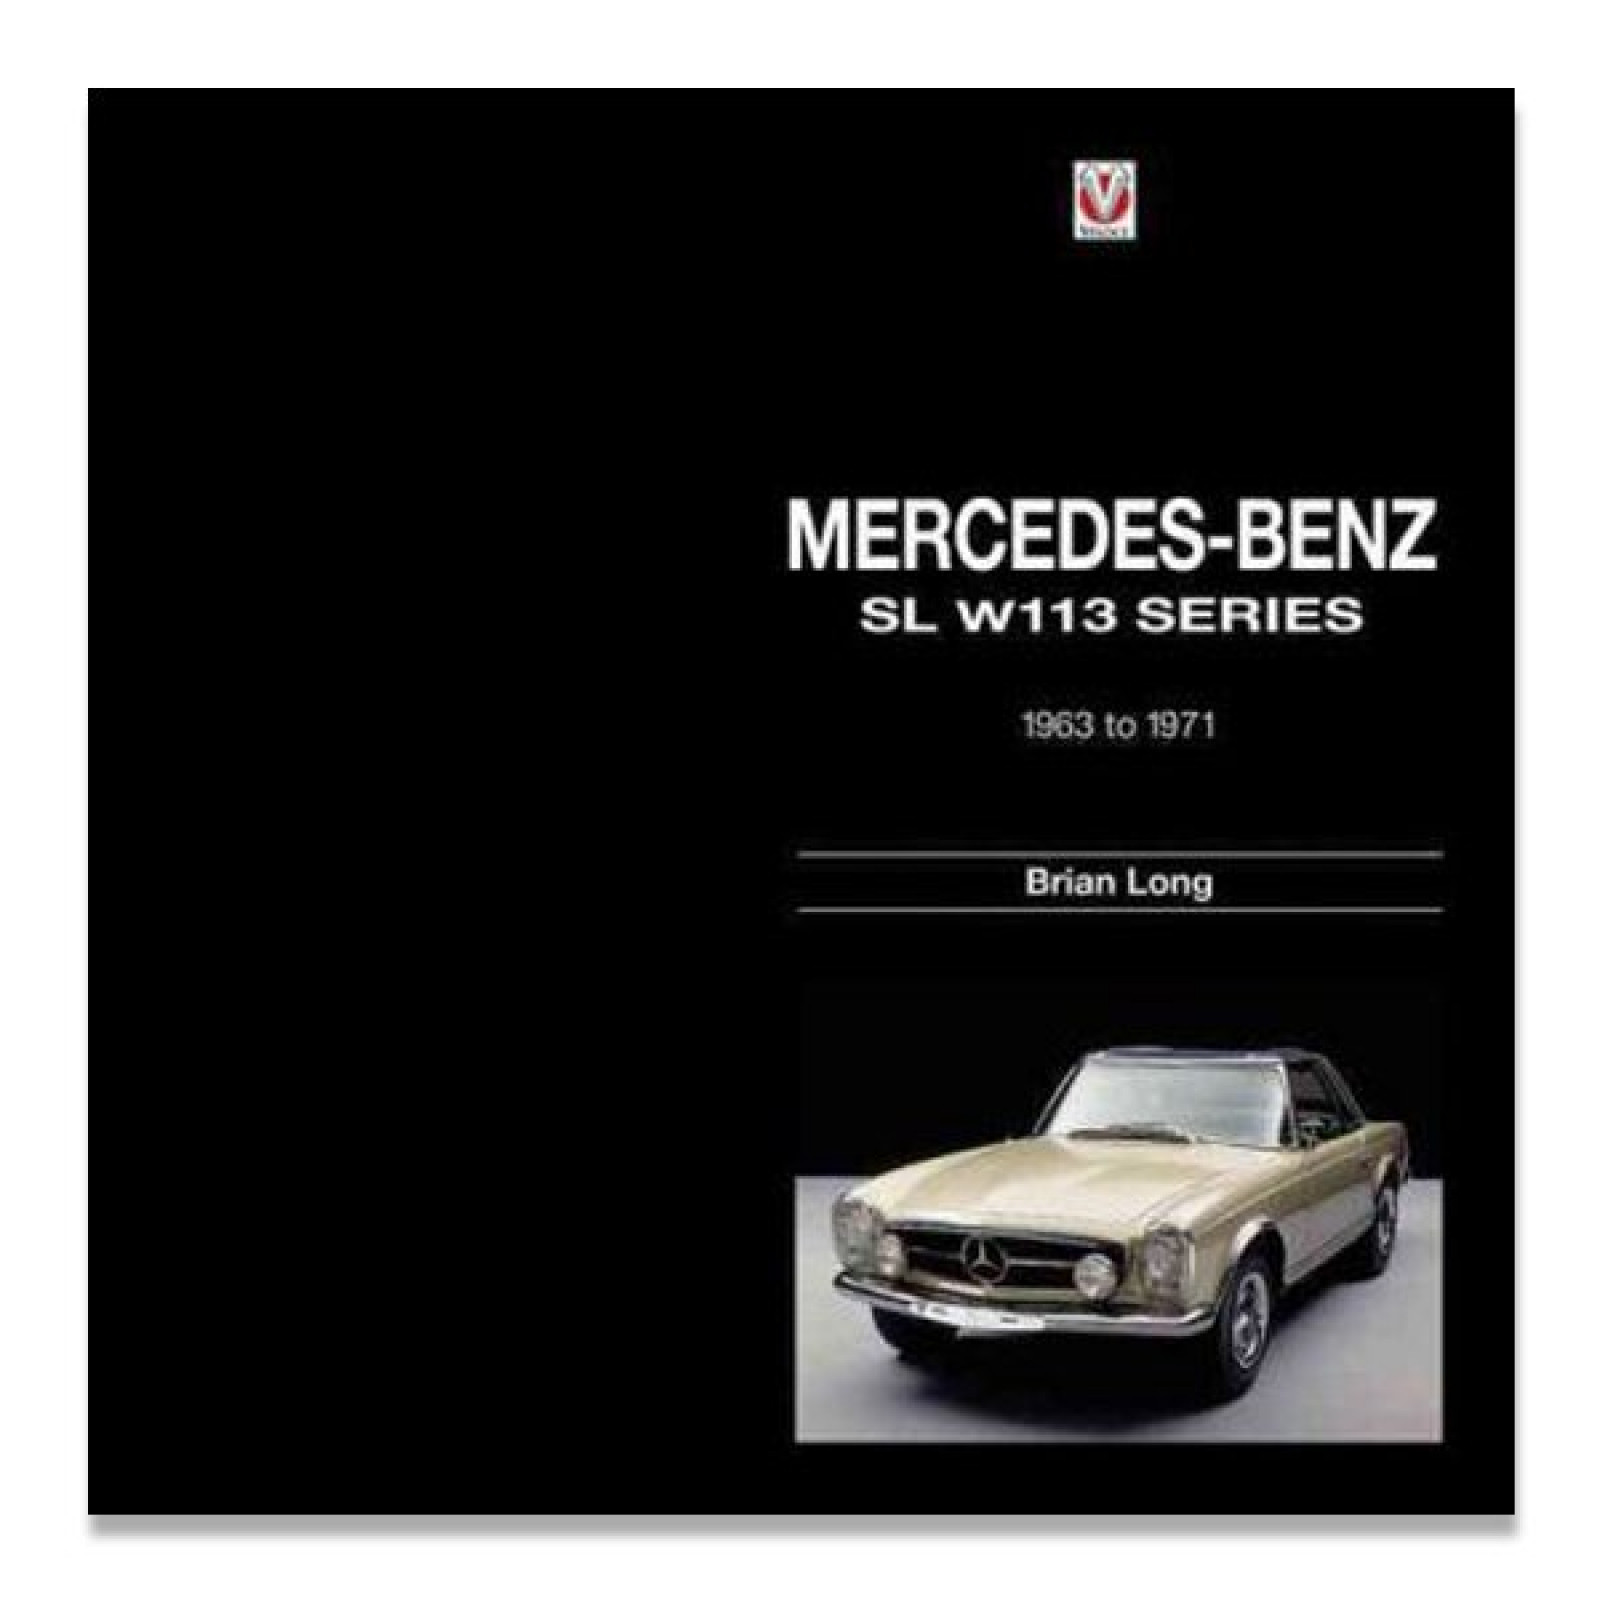 Mercedes benz sl w113 series 1963 to 1971 book by brian for Books mercedes benz